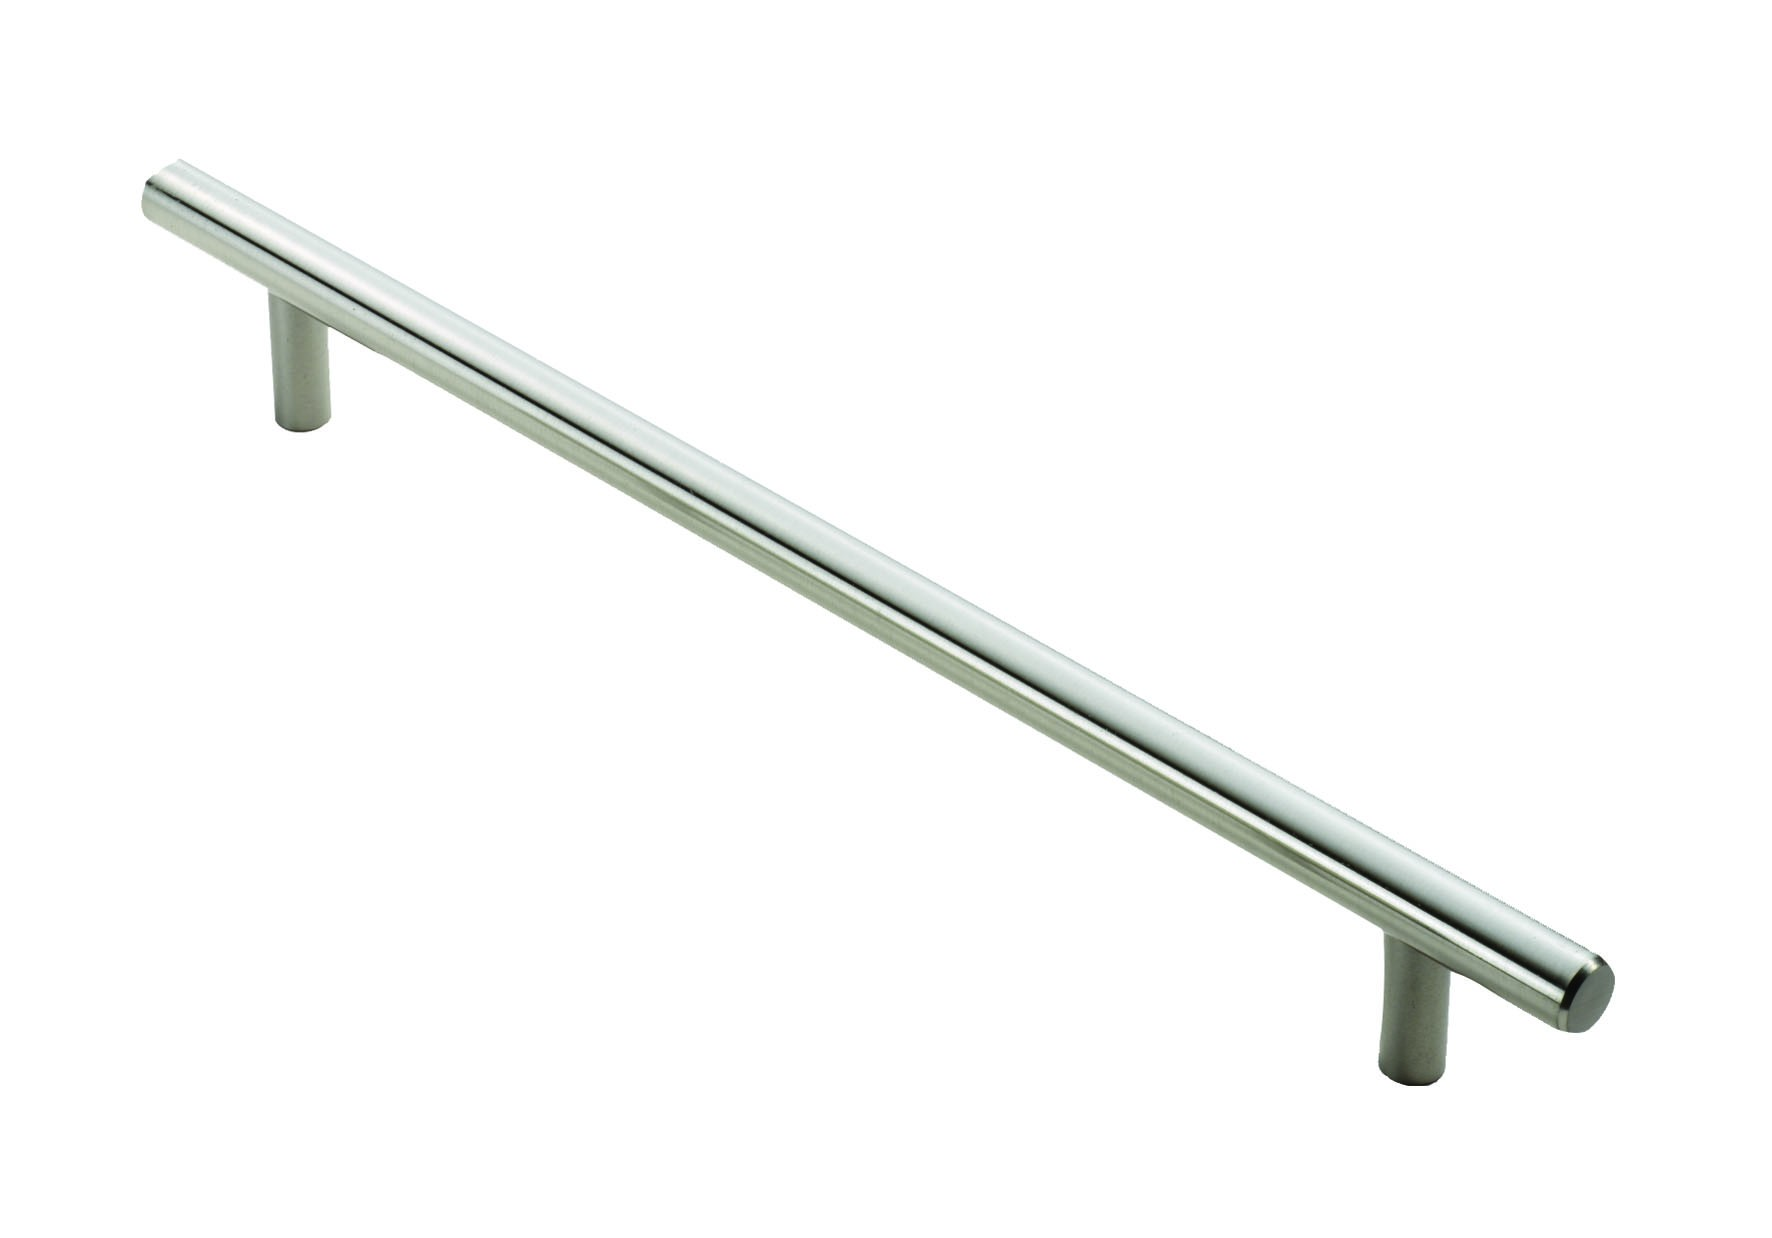 T bar handle 128mm centres satin nickel